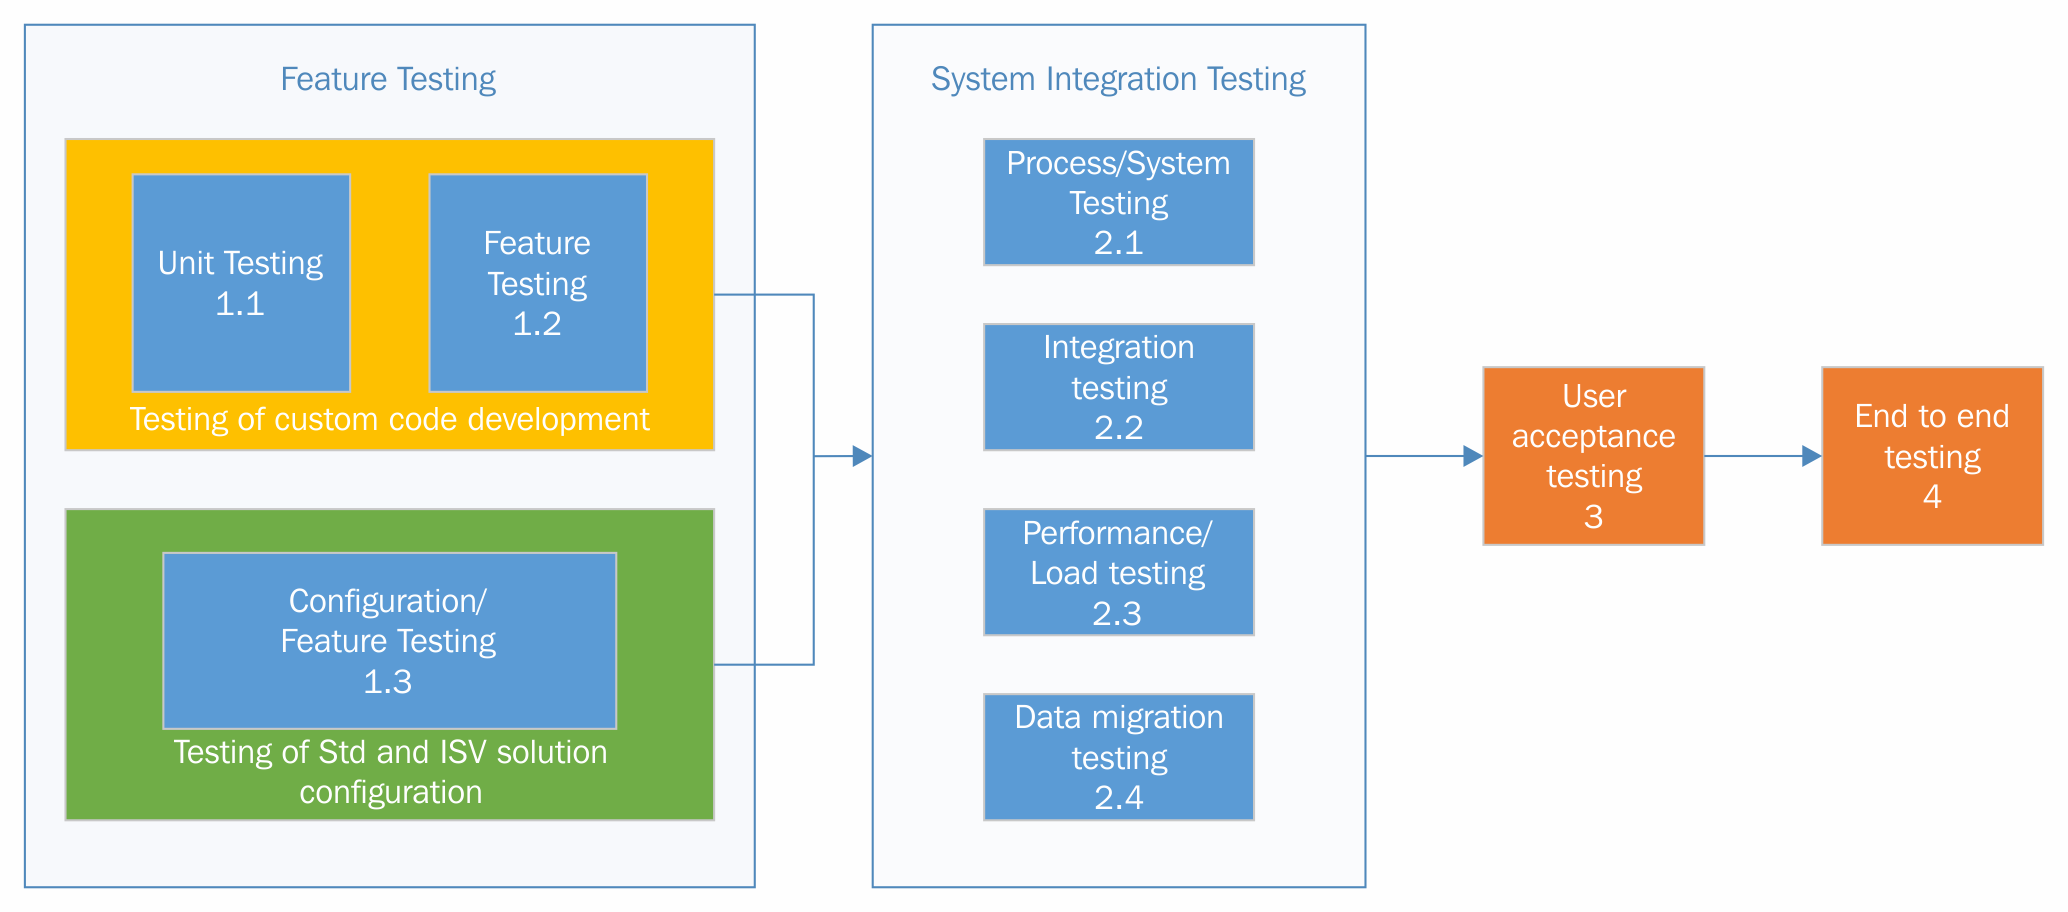 Types of testing implementing microsoft dynamics 365 for finance as shown in the diagram we can categorize testing into four main categories feature testing system integration testing user acceptance testing pooptronica Choice Image